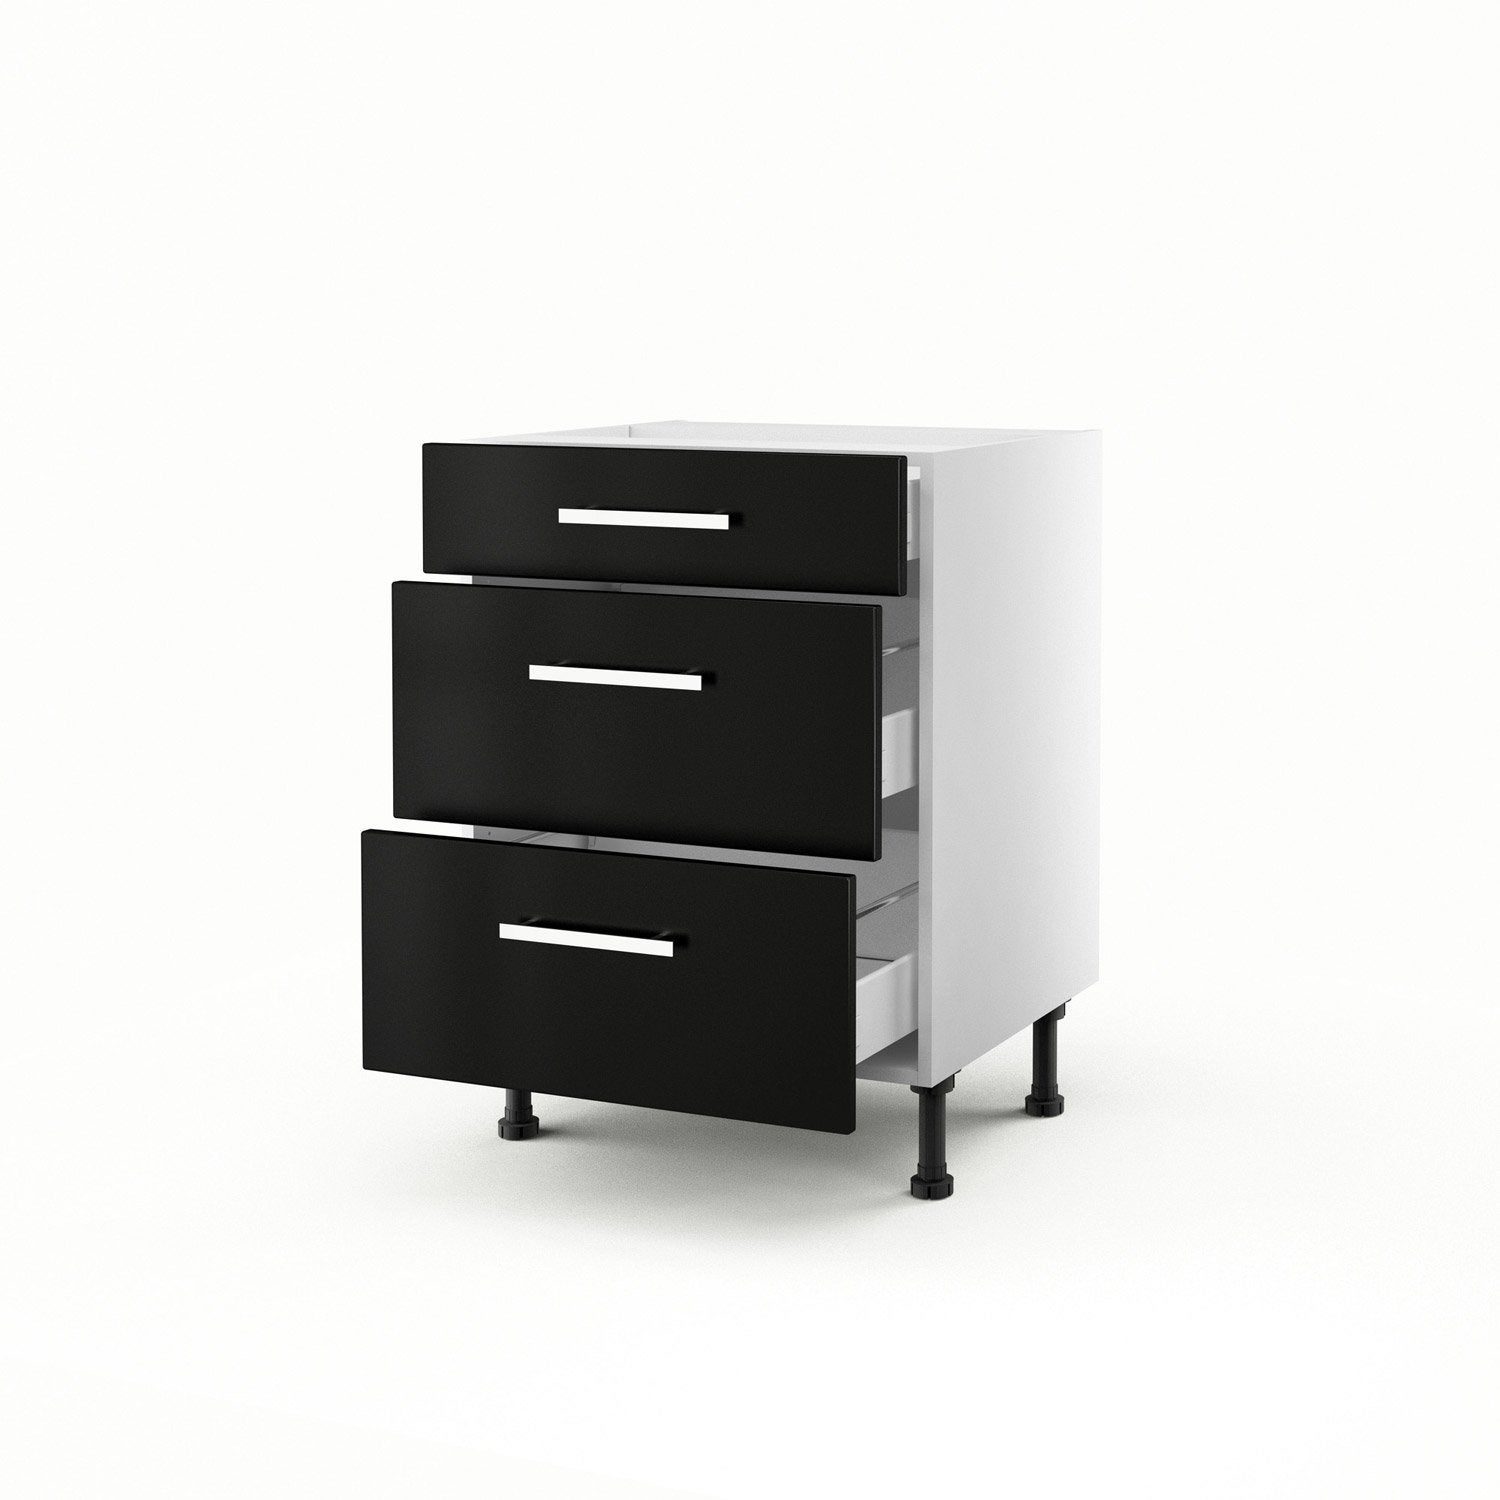 meuble de cuisine bas noir 3 tiroirs d lice x x. Black Bedroom Furniture Sets. Home Design Ideas